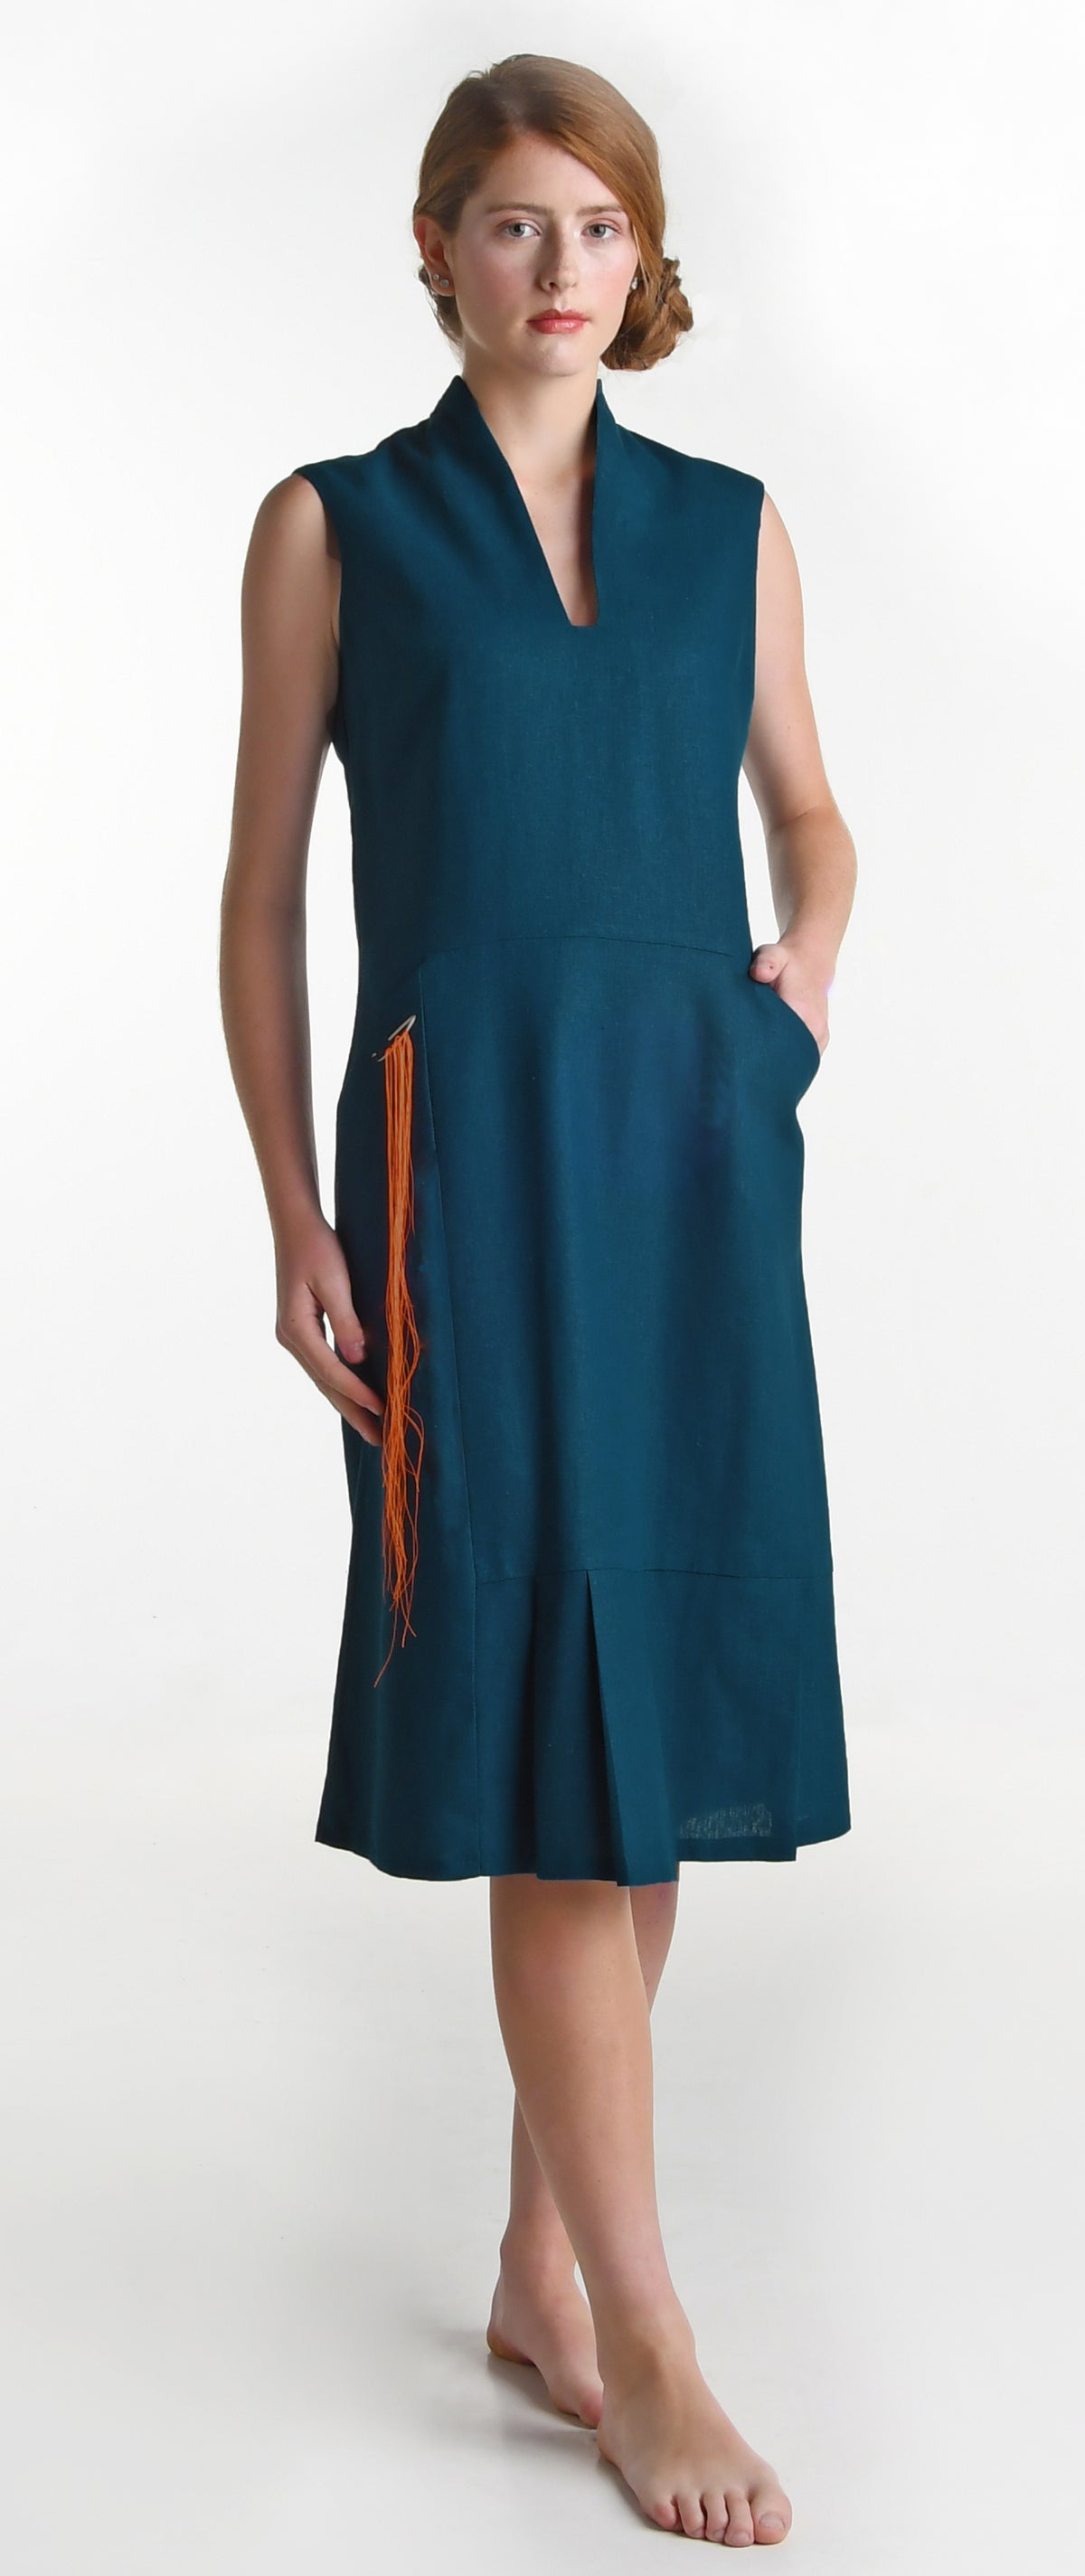 Image of harding dress teal